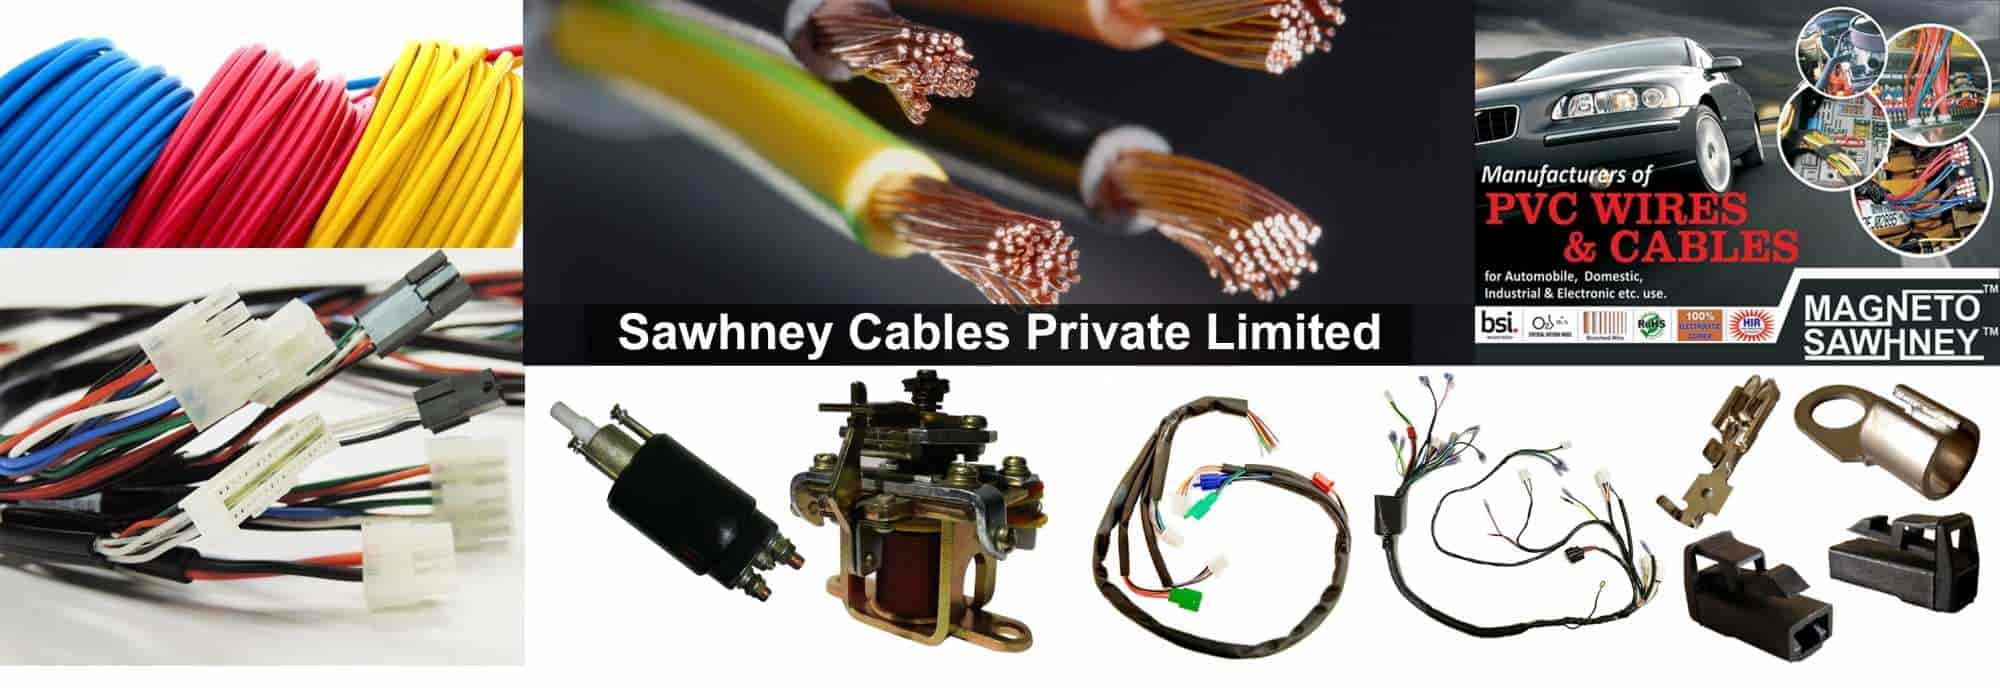 Sawhney Cables Private Limited, Rai - PVC Insulated Cable ...